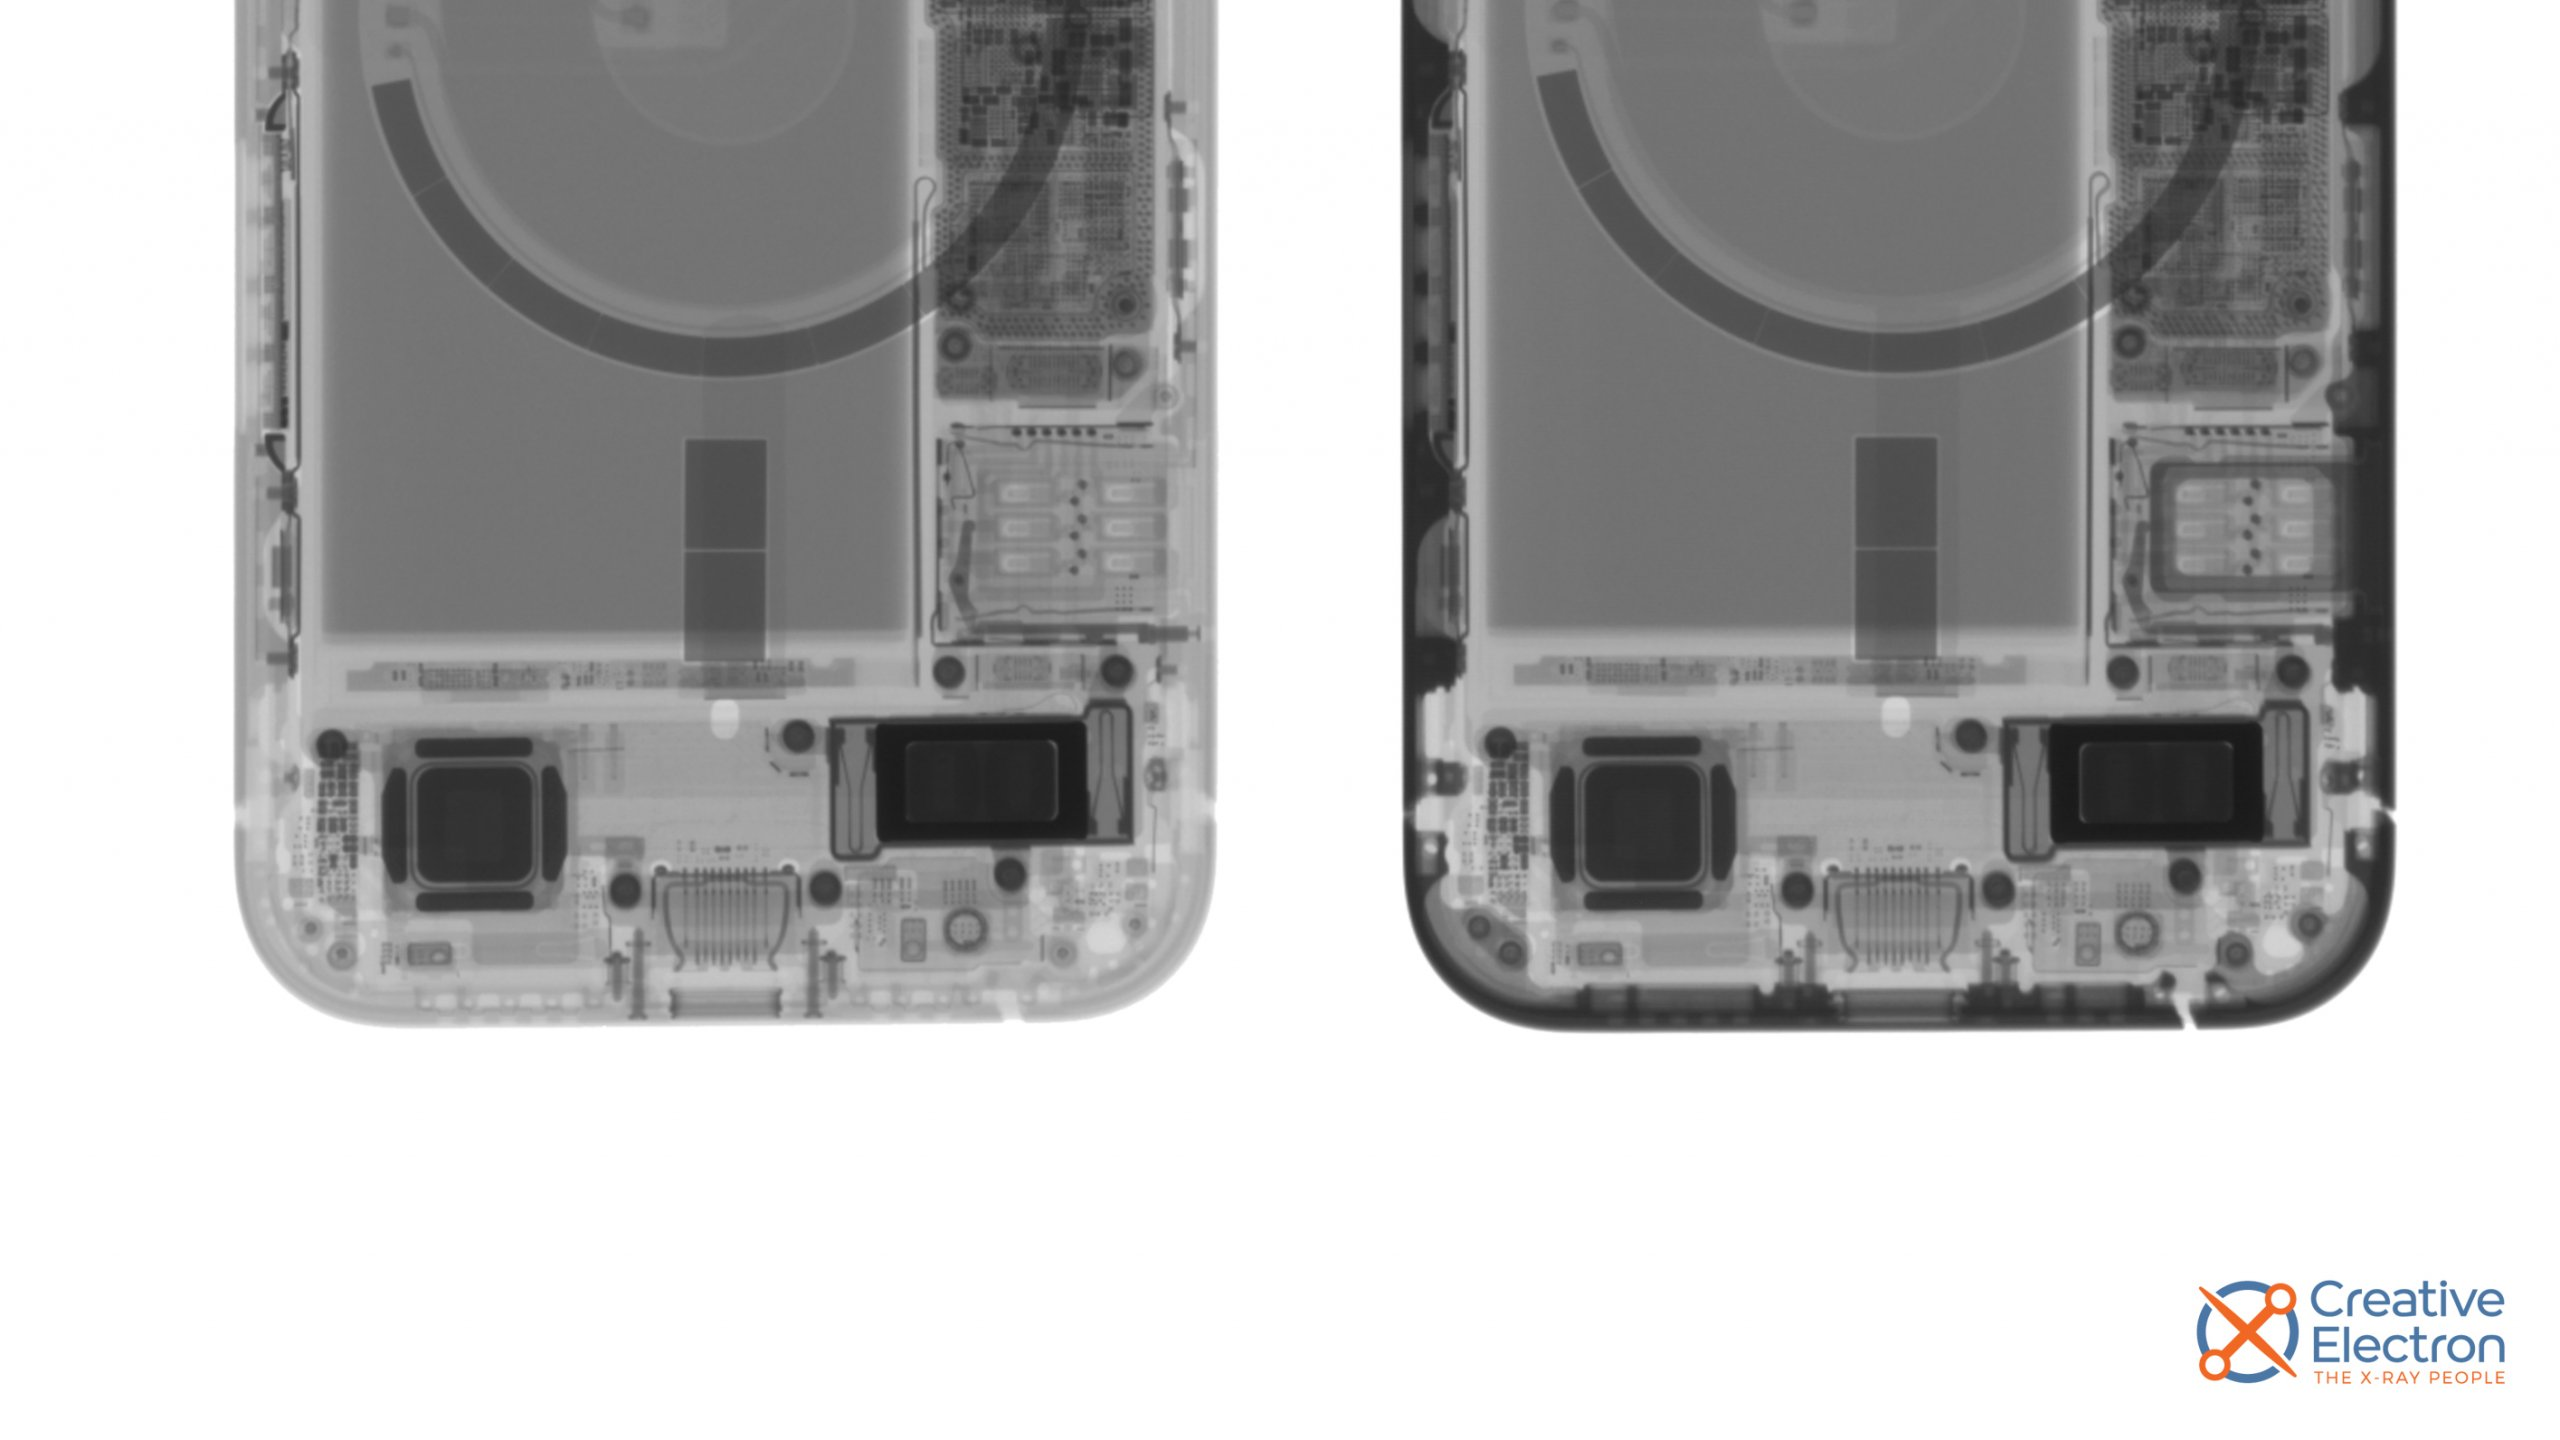 X-rays of iPhones, with the Taptic Engine in particular focus